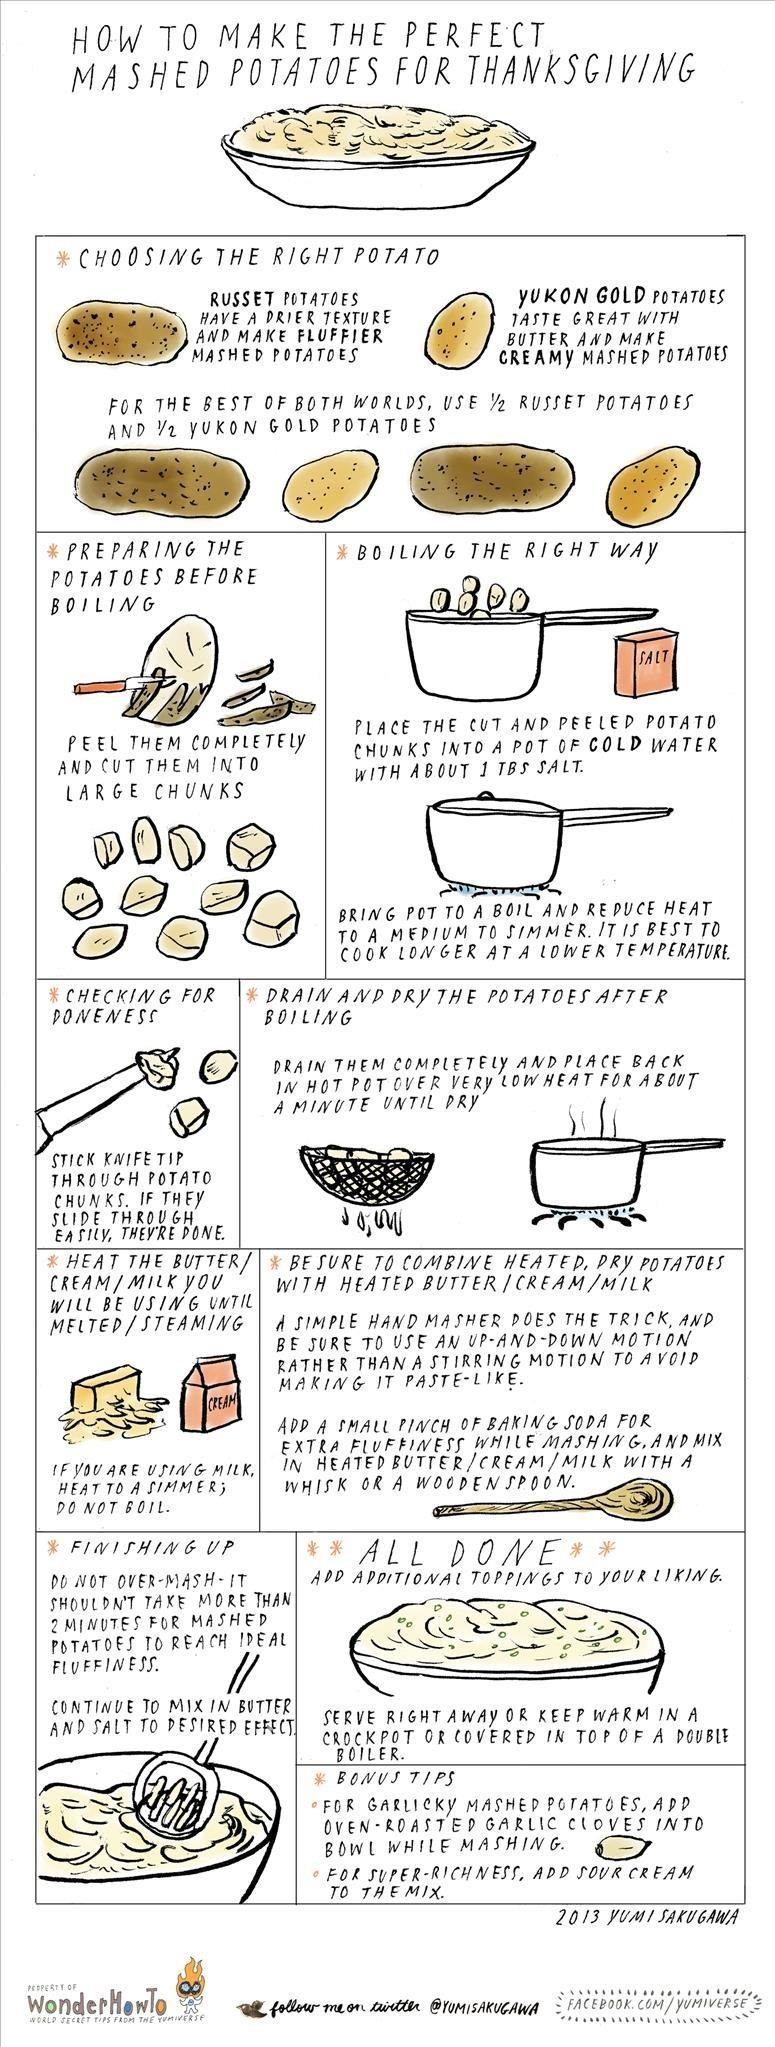 How to Make Perfect Mashed Potatoes on Thanksgiving